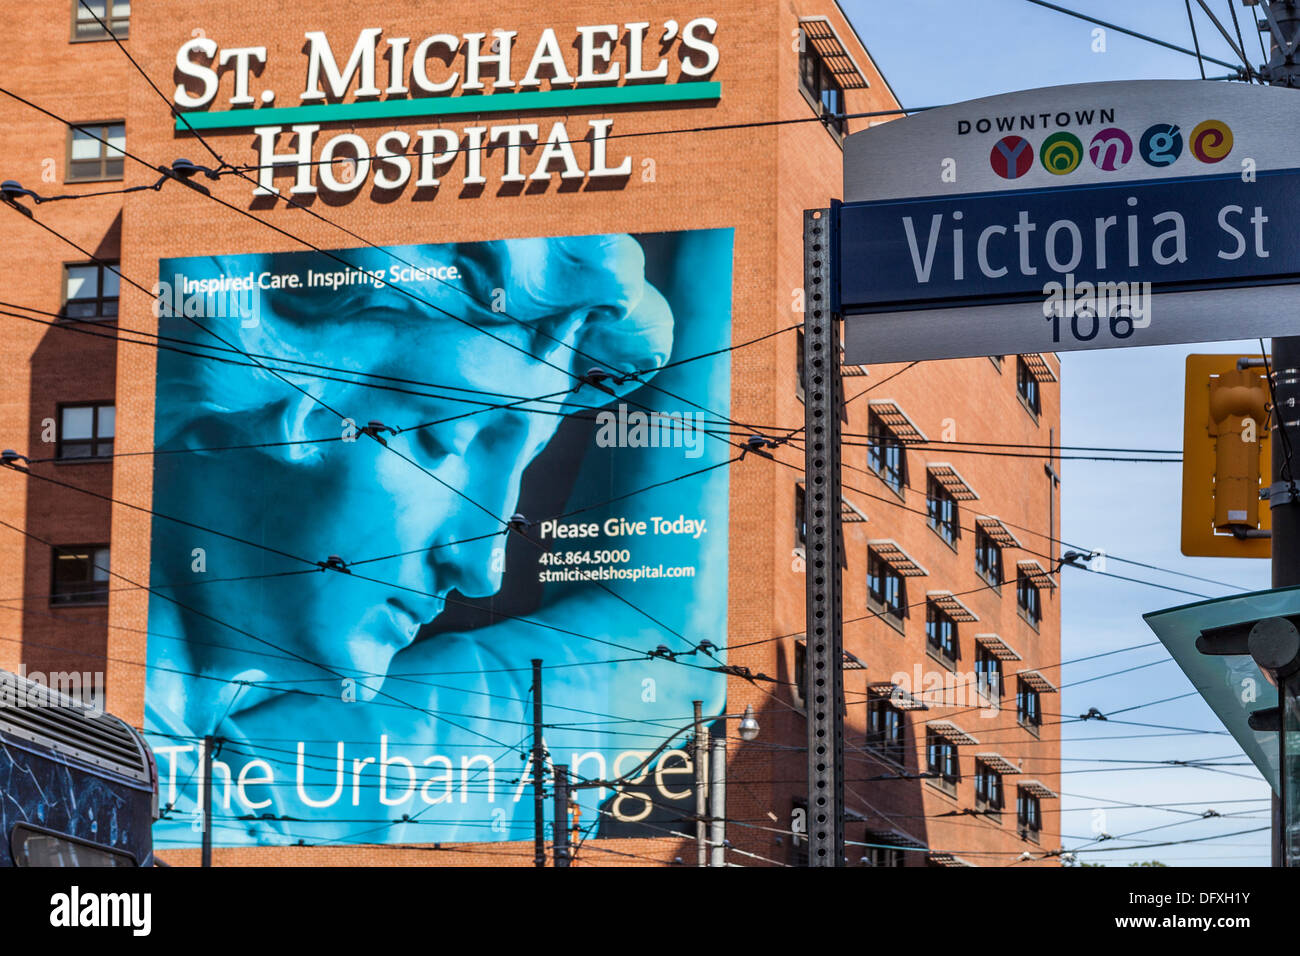 St Michael's hospital with mural and Victoria street sign in Downtown Yonge, Toronto - Stock Image